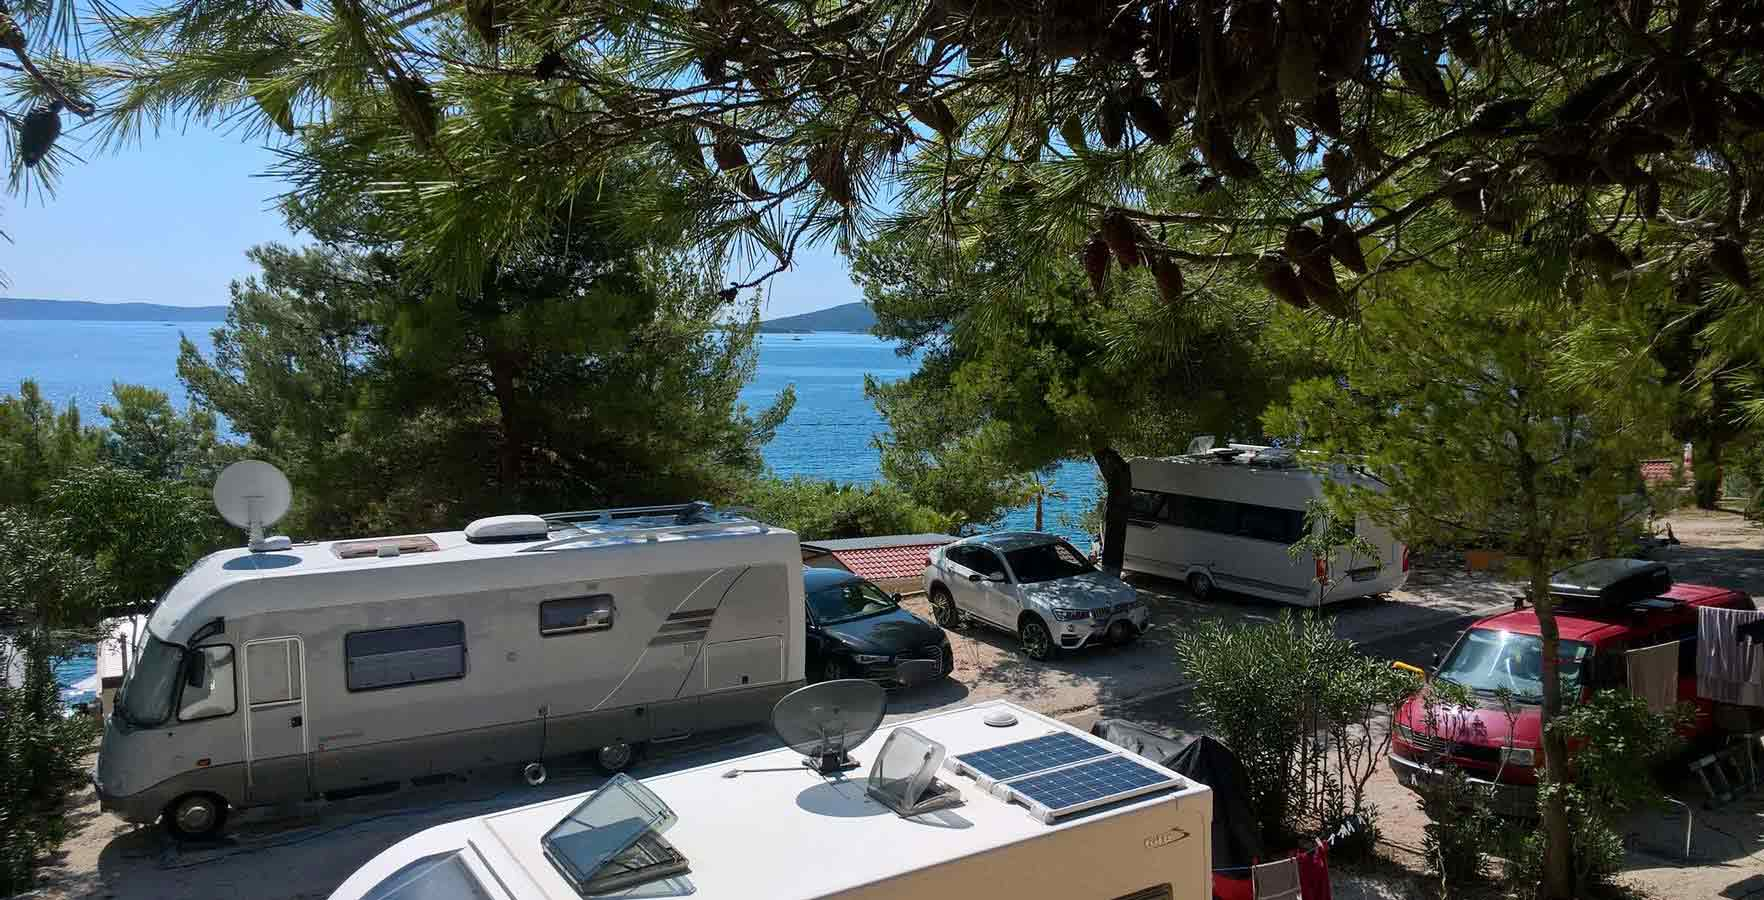 Campsite Belvedere - accommodation in Croatia